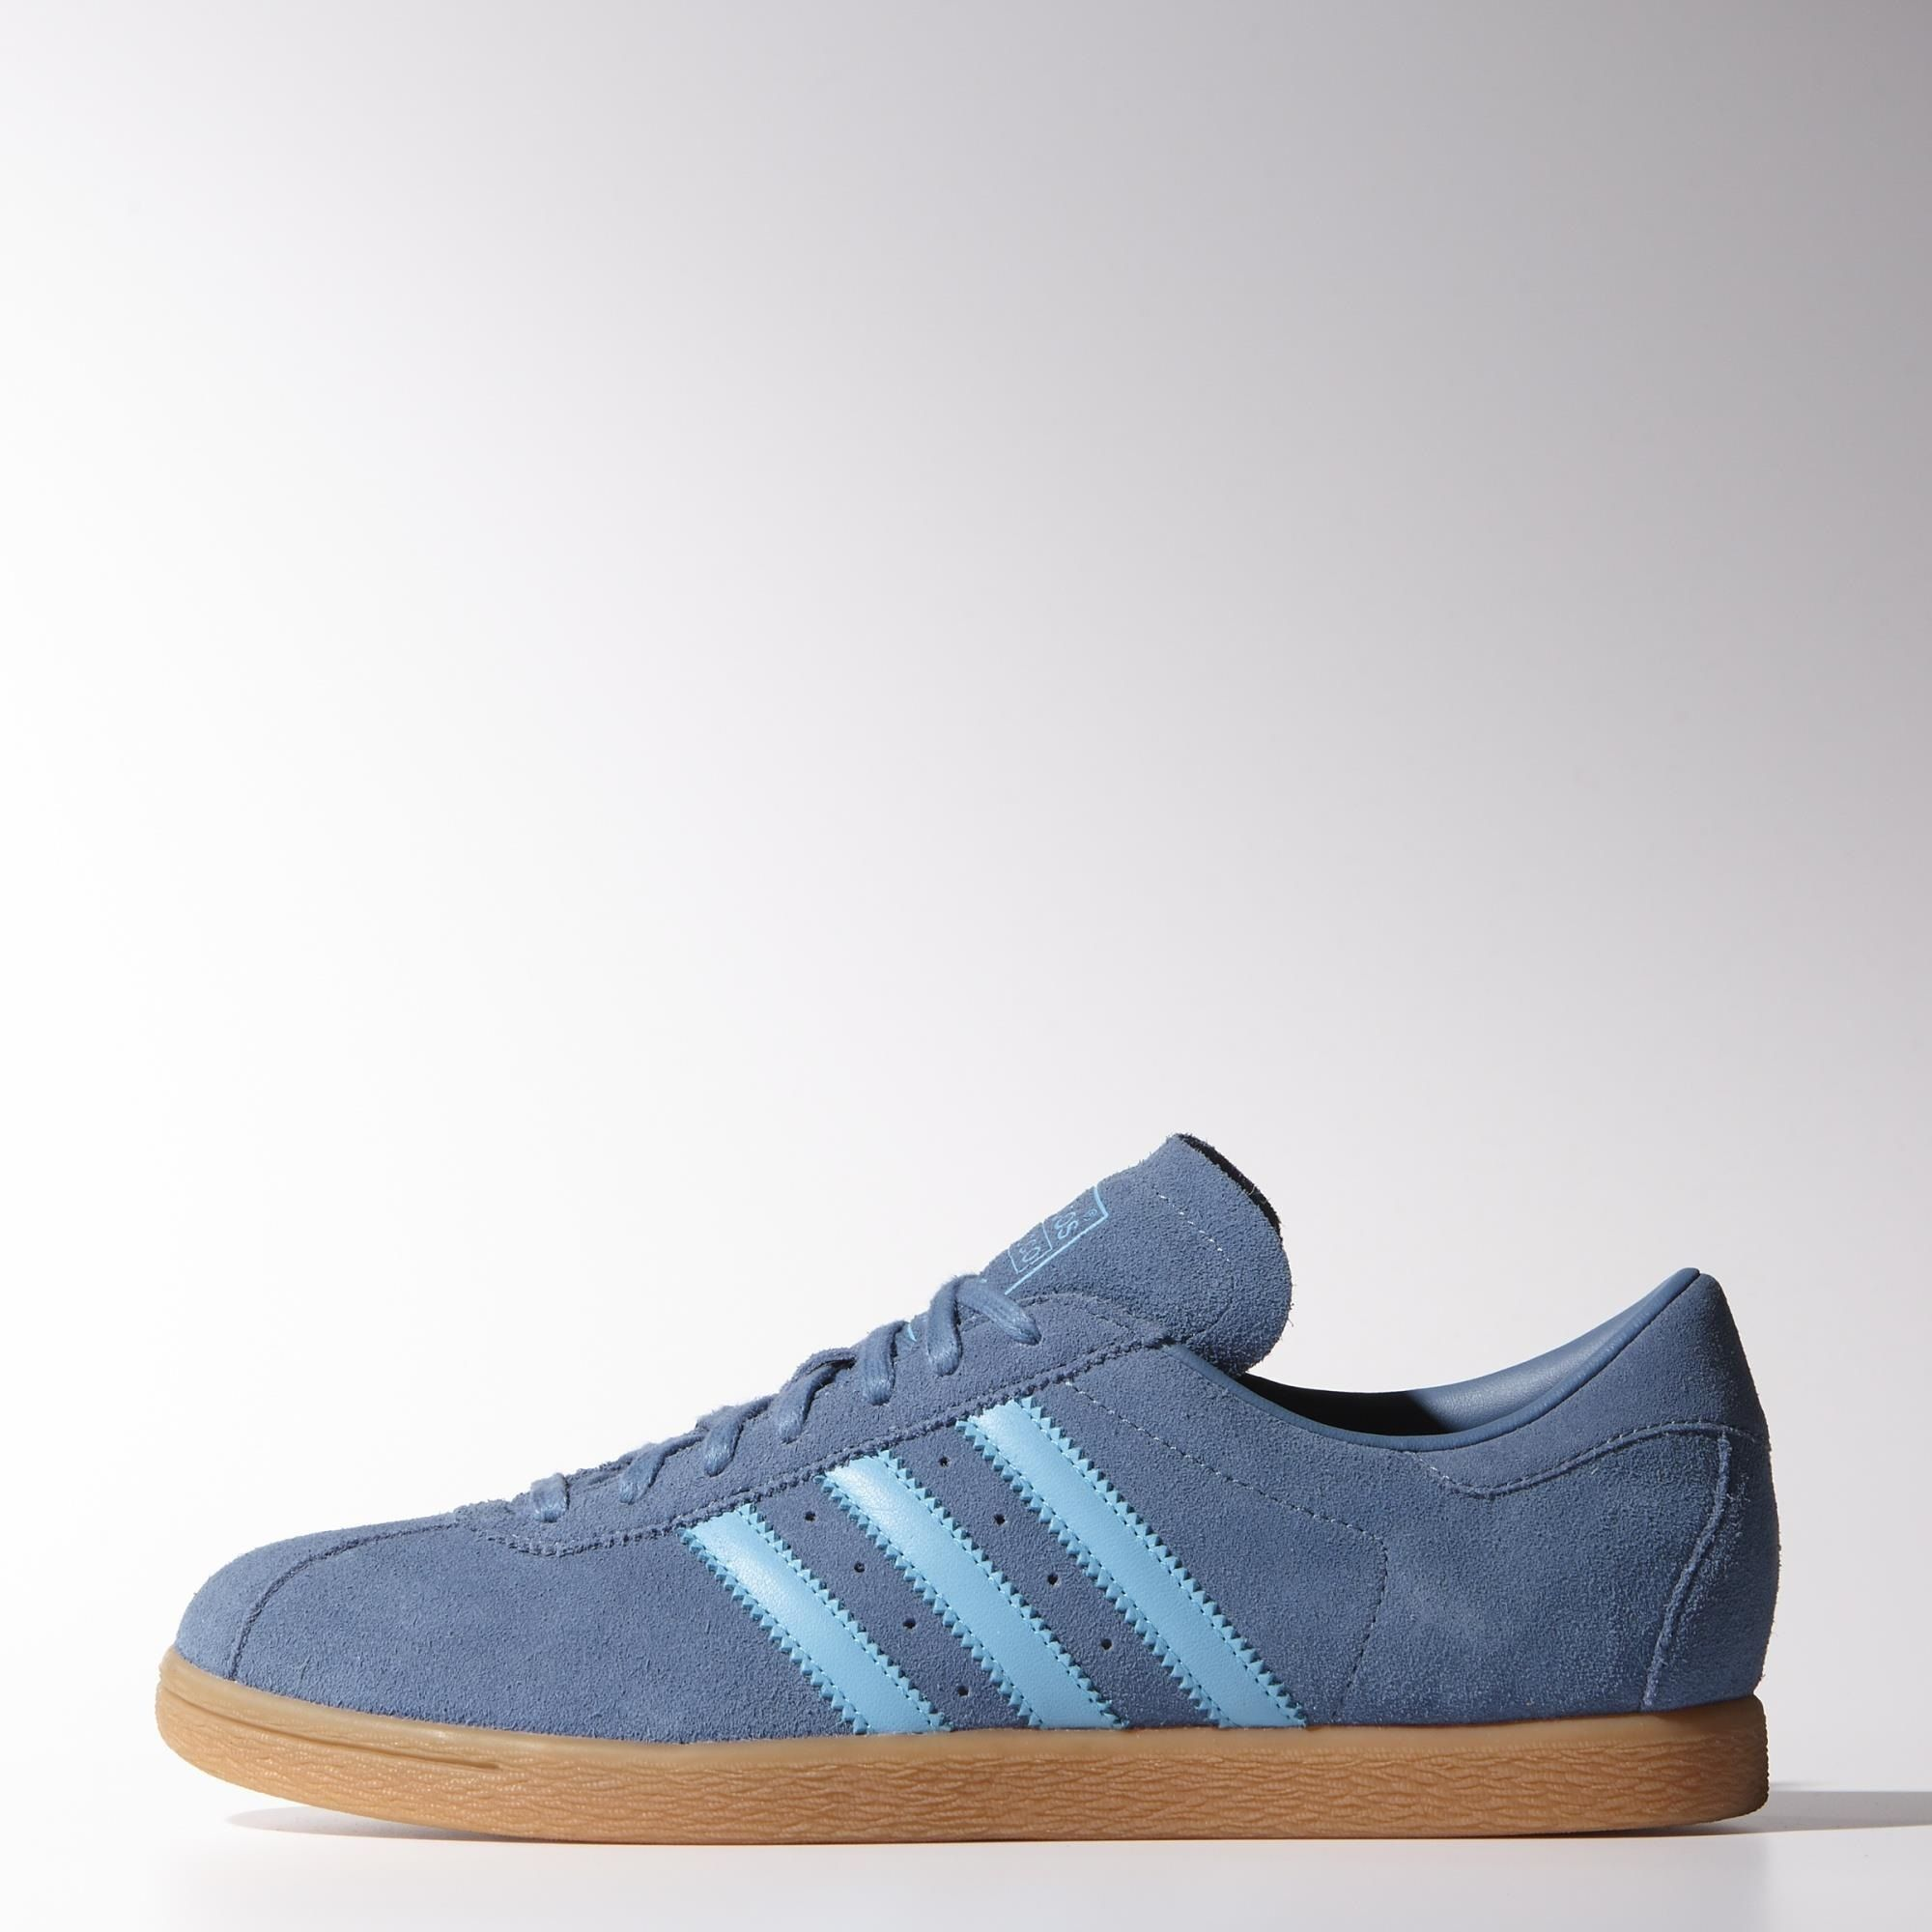 adidas Tobacco Shoes  Bringing back the iconic Tobacco these vintagestyle  mens shoes